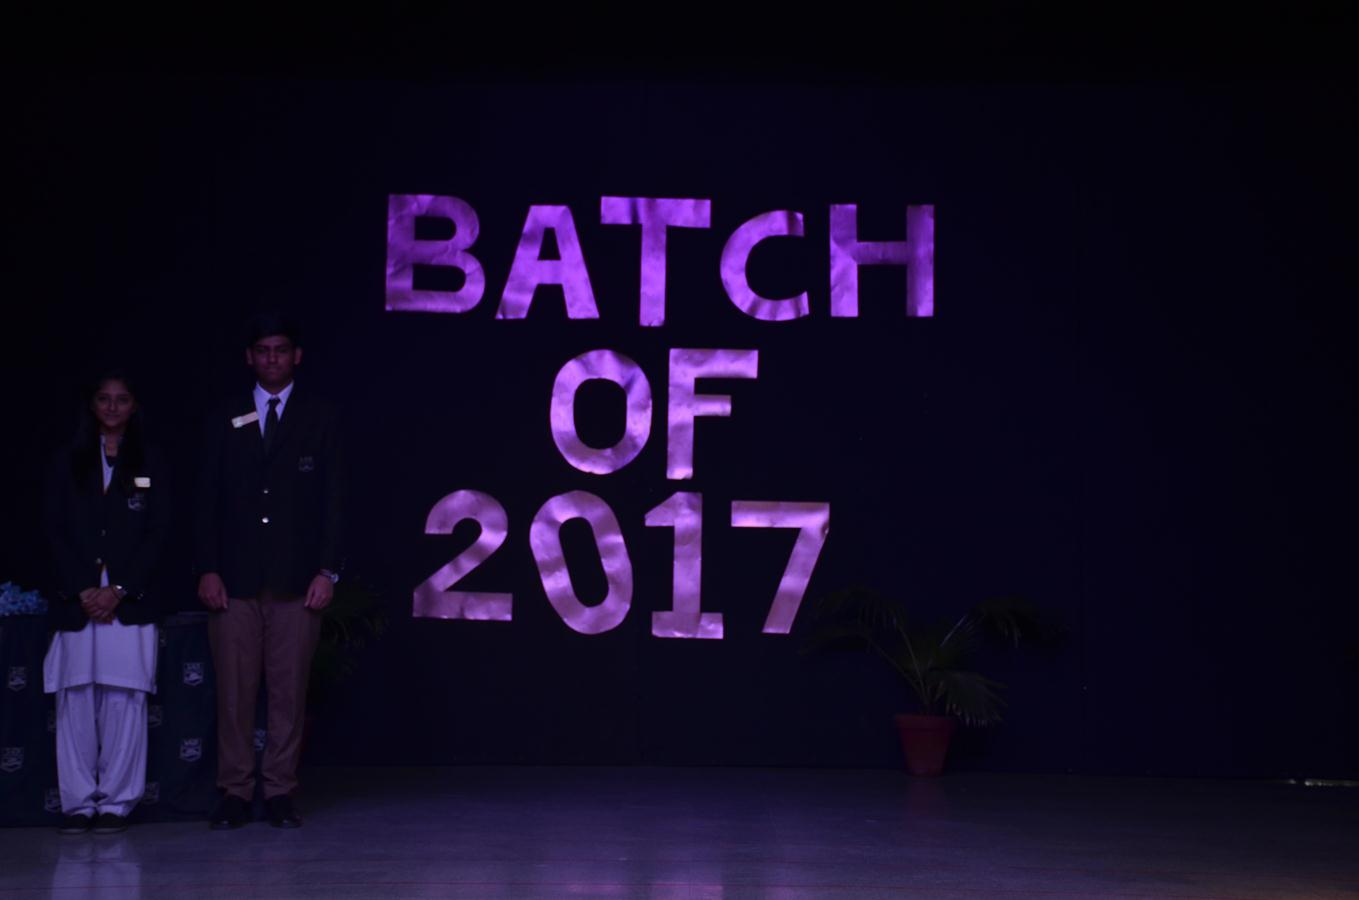 A level Graduation Ceremony (Batch of 2017)